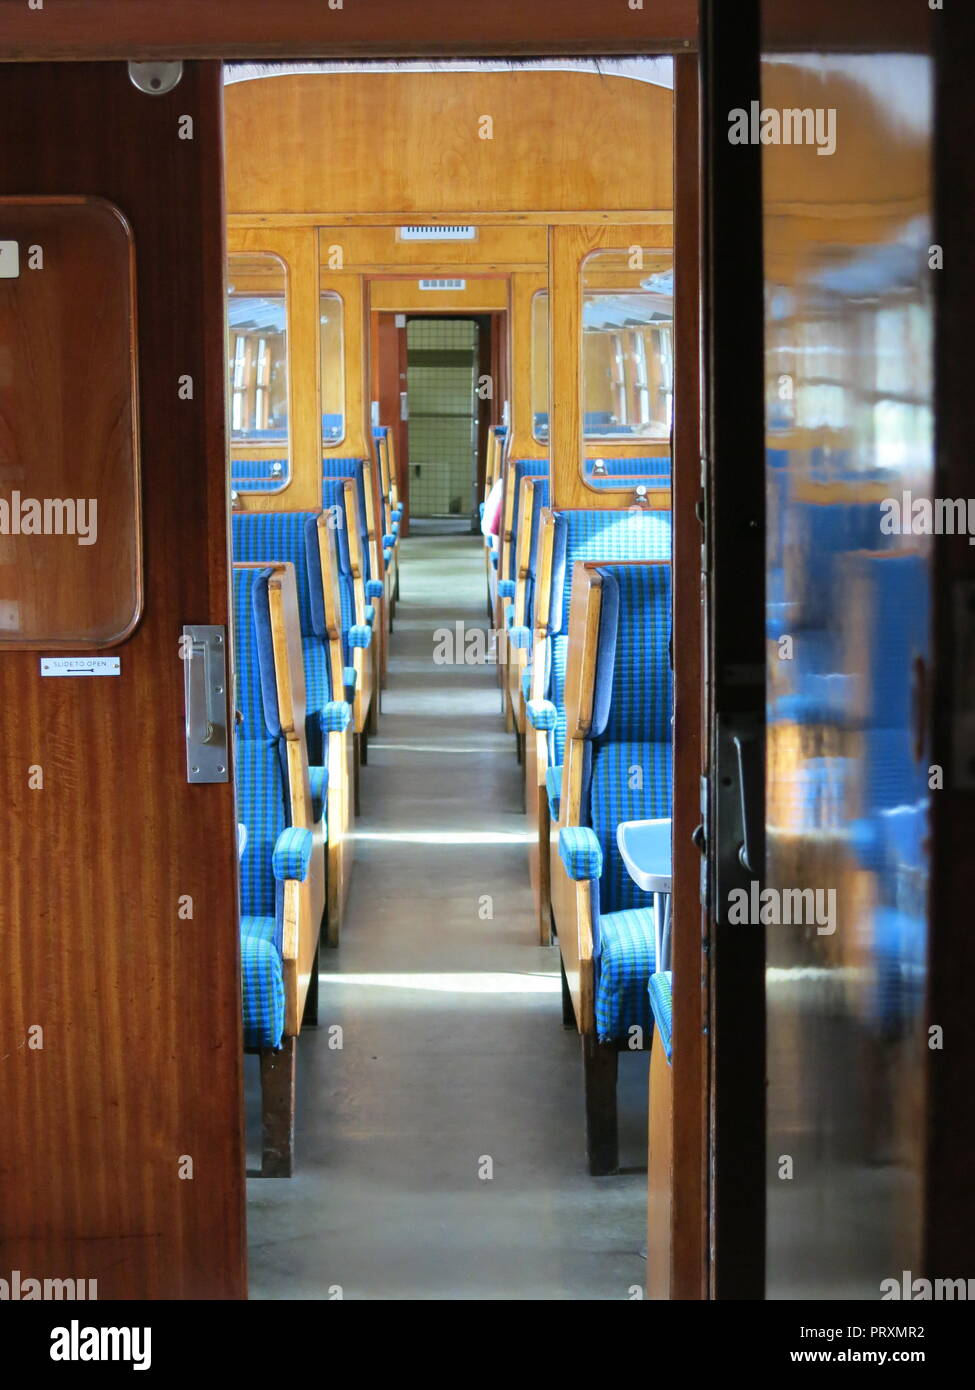 View of blue-upholstered seats in the interior of one of the compartments on a steam train operating on the Gloucestershire Warwickshire Steam Railway - Stock Image